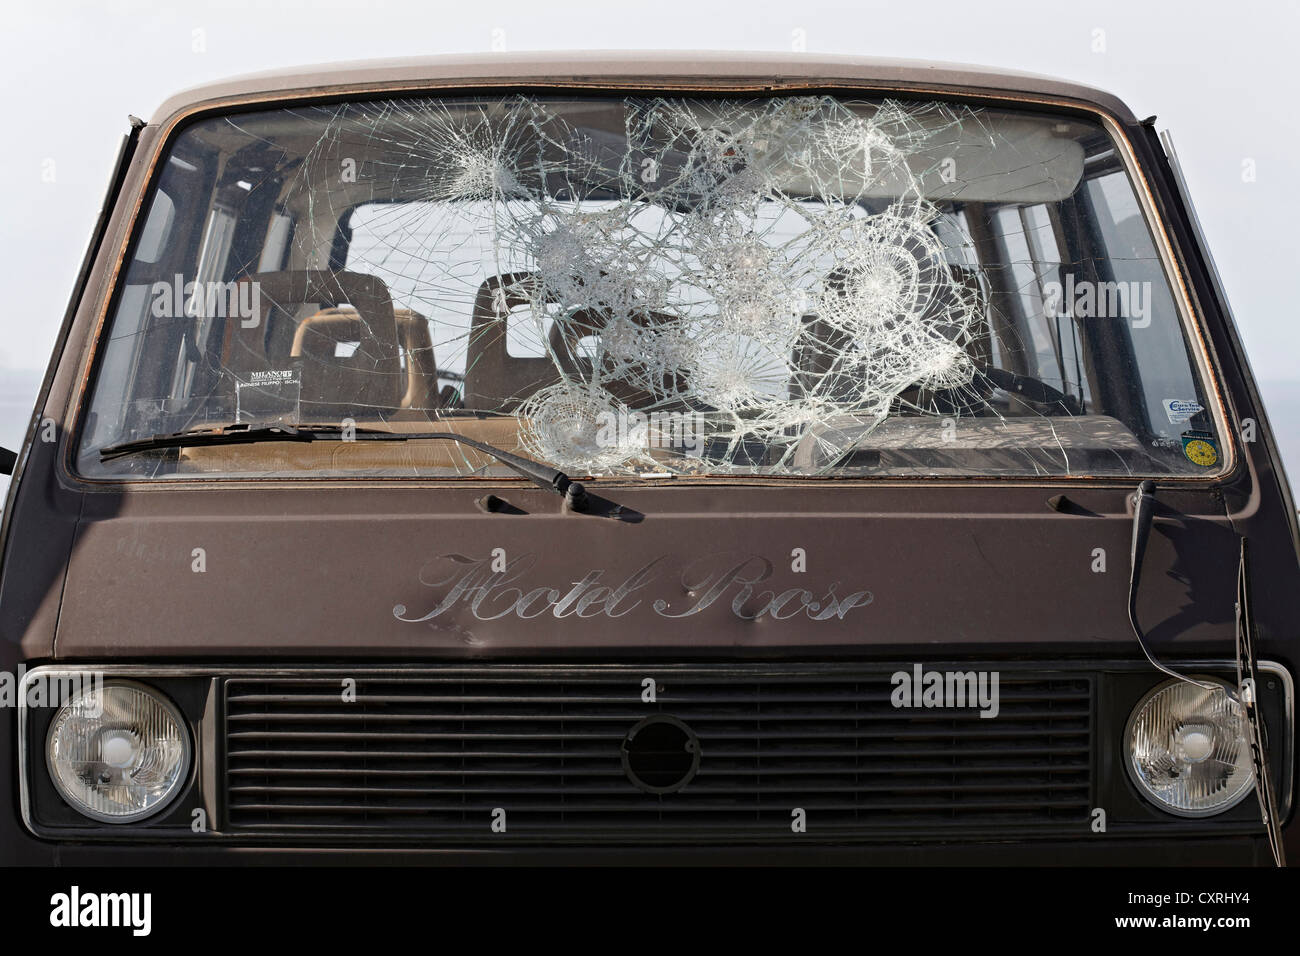 Old minibus with smashed in windscreen, safety glass - Stock Image